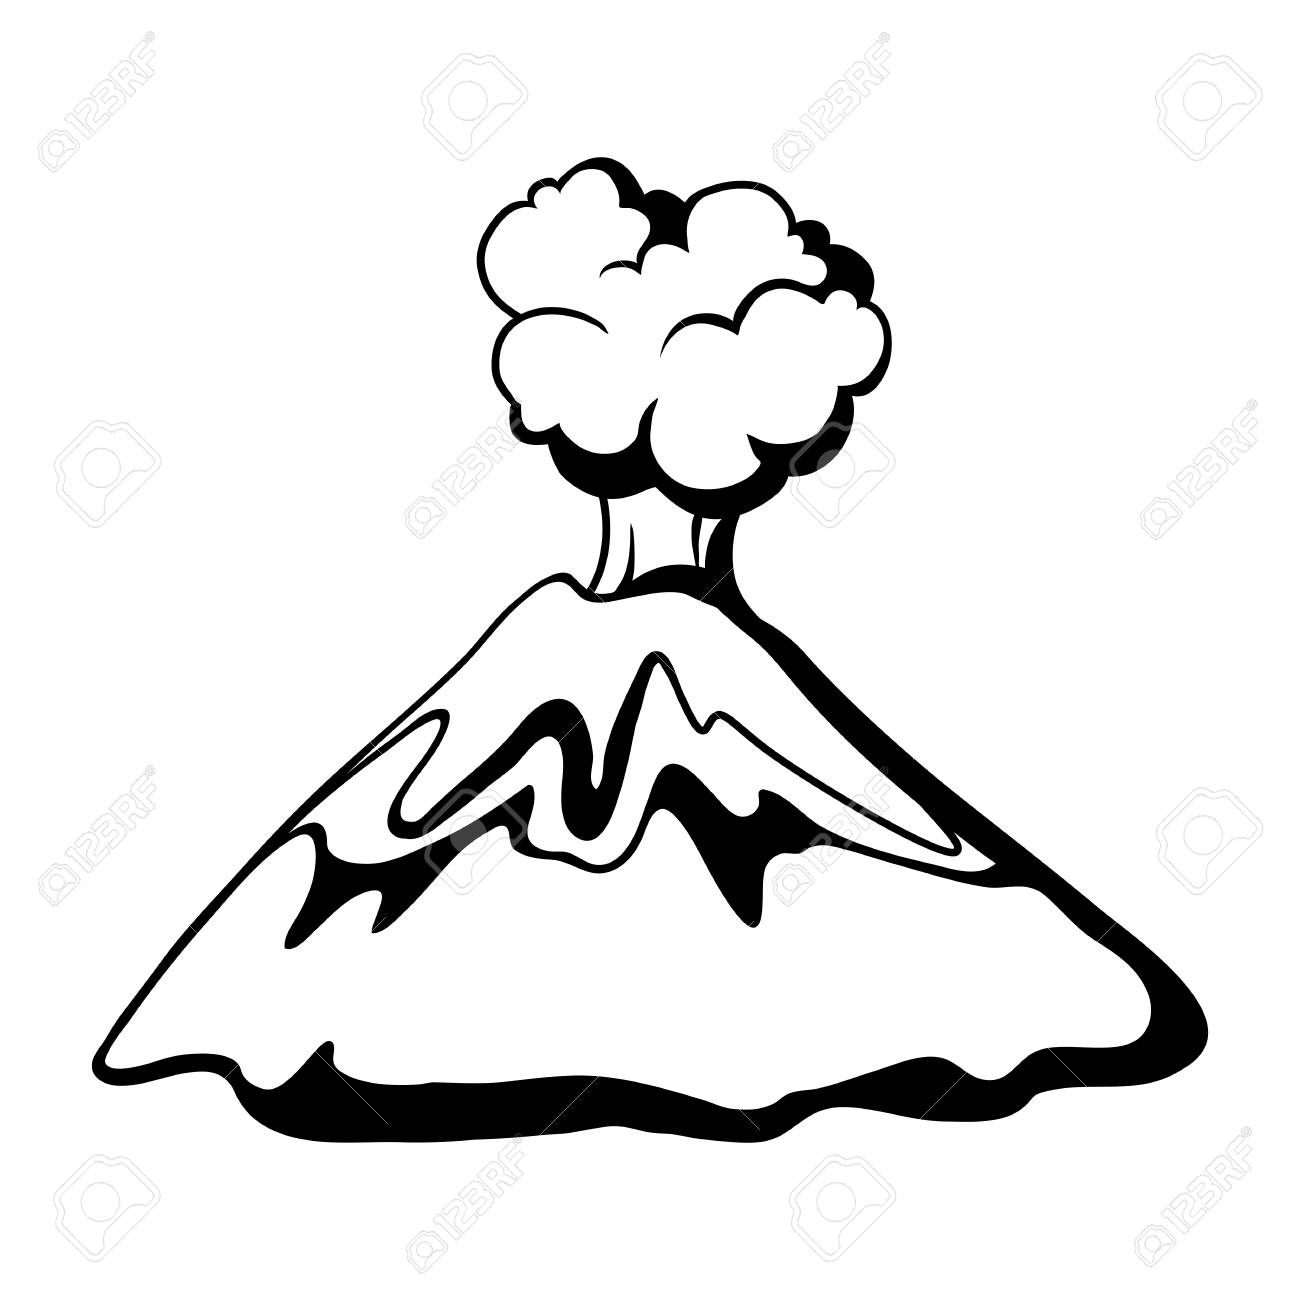 Volcano exploding nature landscape black and white illustration of mountain stock vector